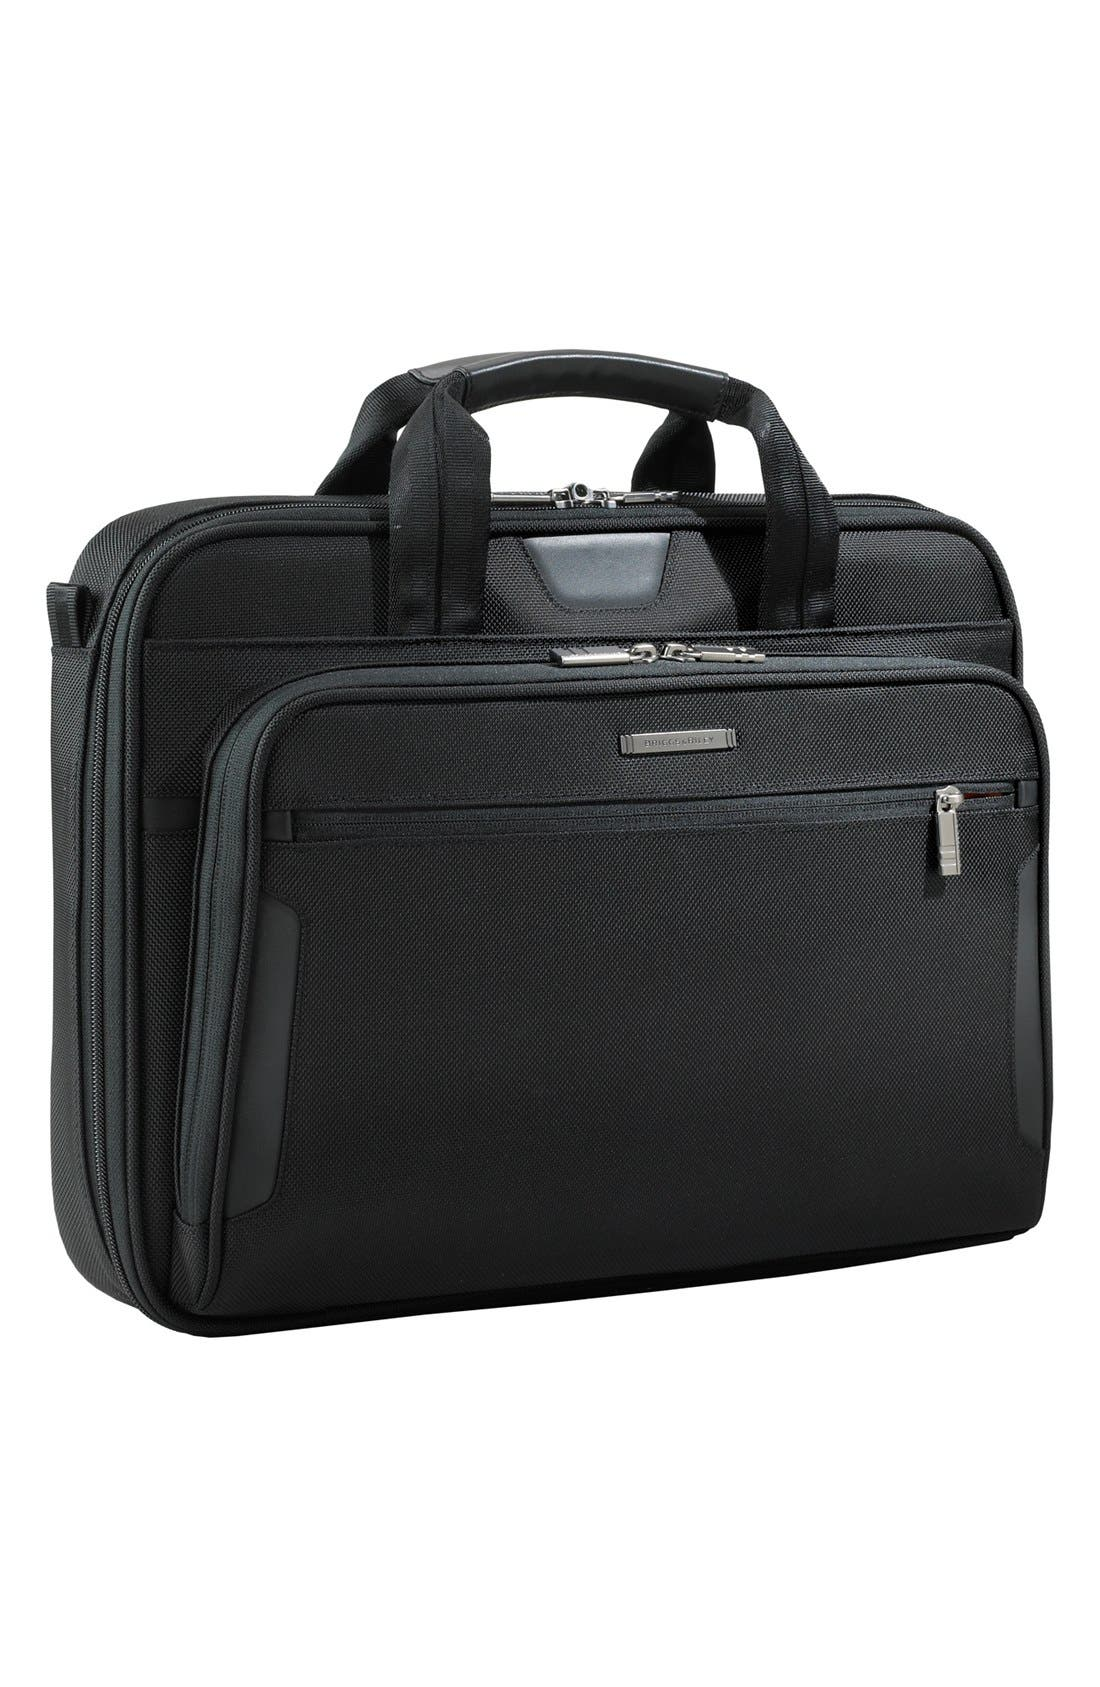 BRIGGS & RILEY 'Medium Slim' Ballistic Nylon Briefcase